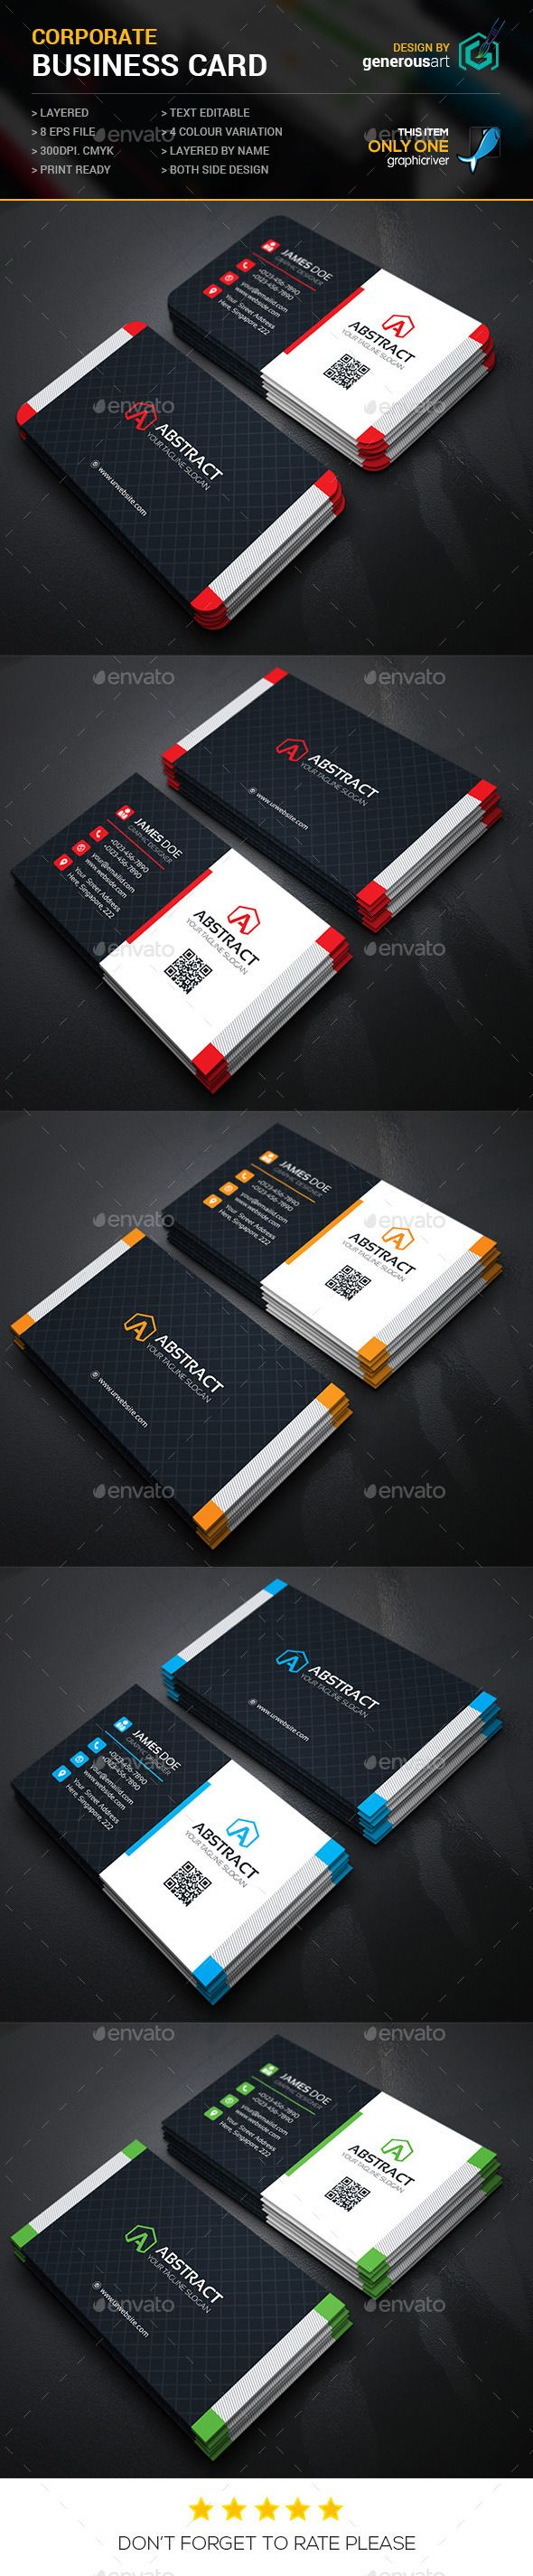 abstract business cards corporate business card templates and